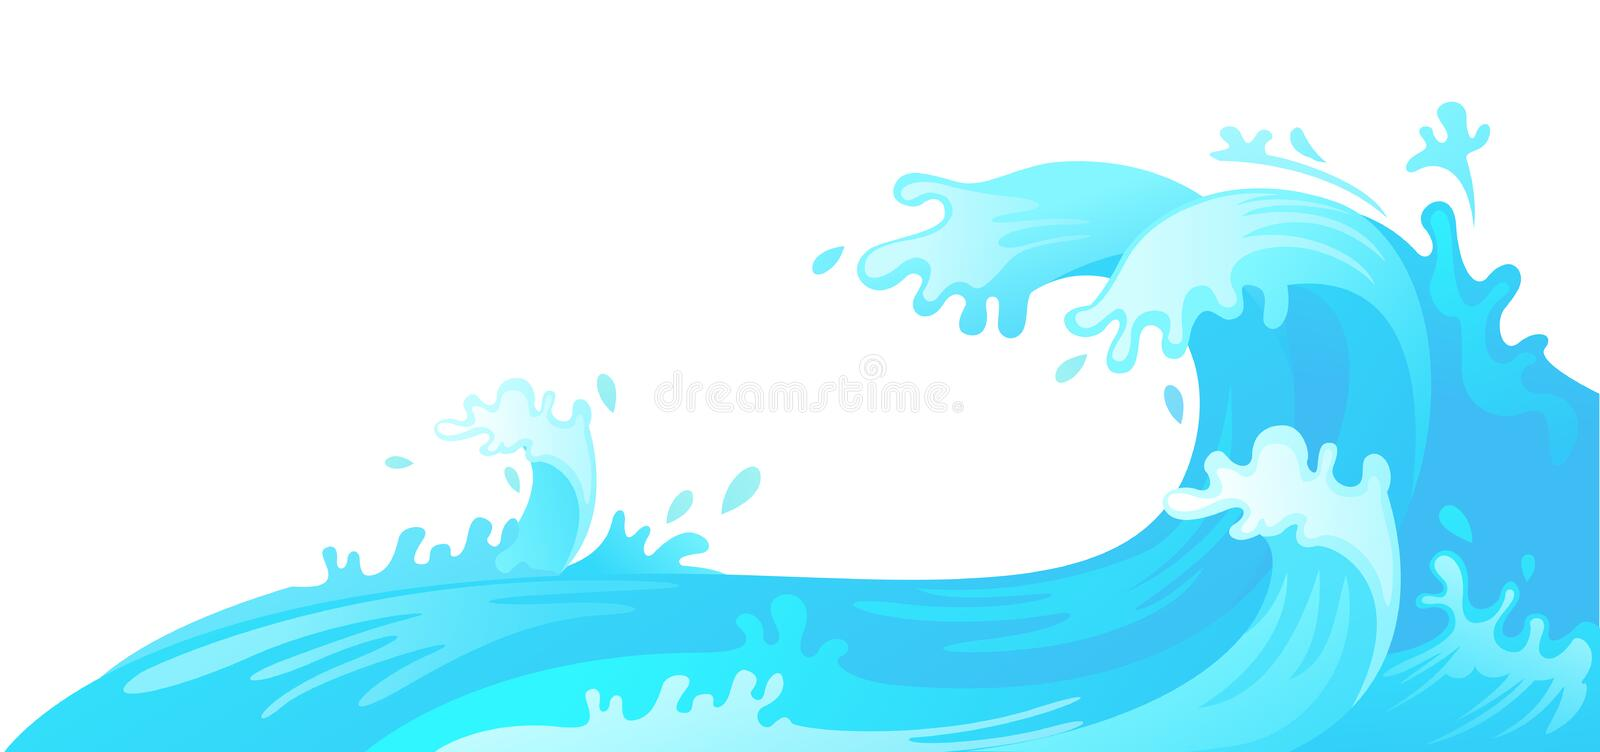 Water wave. Illustration of water wave vector illustration